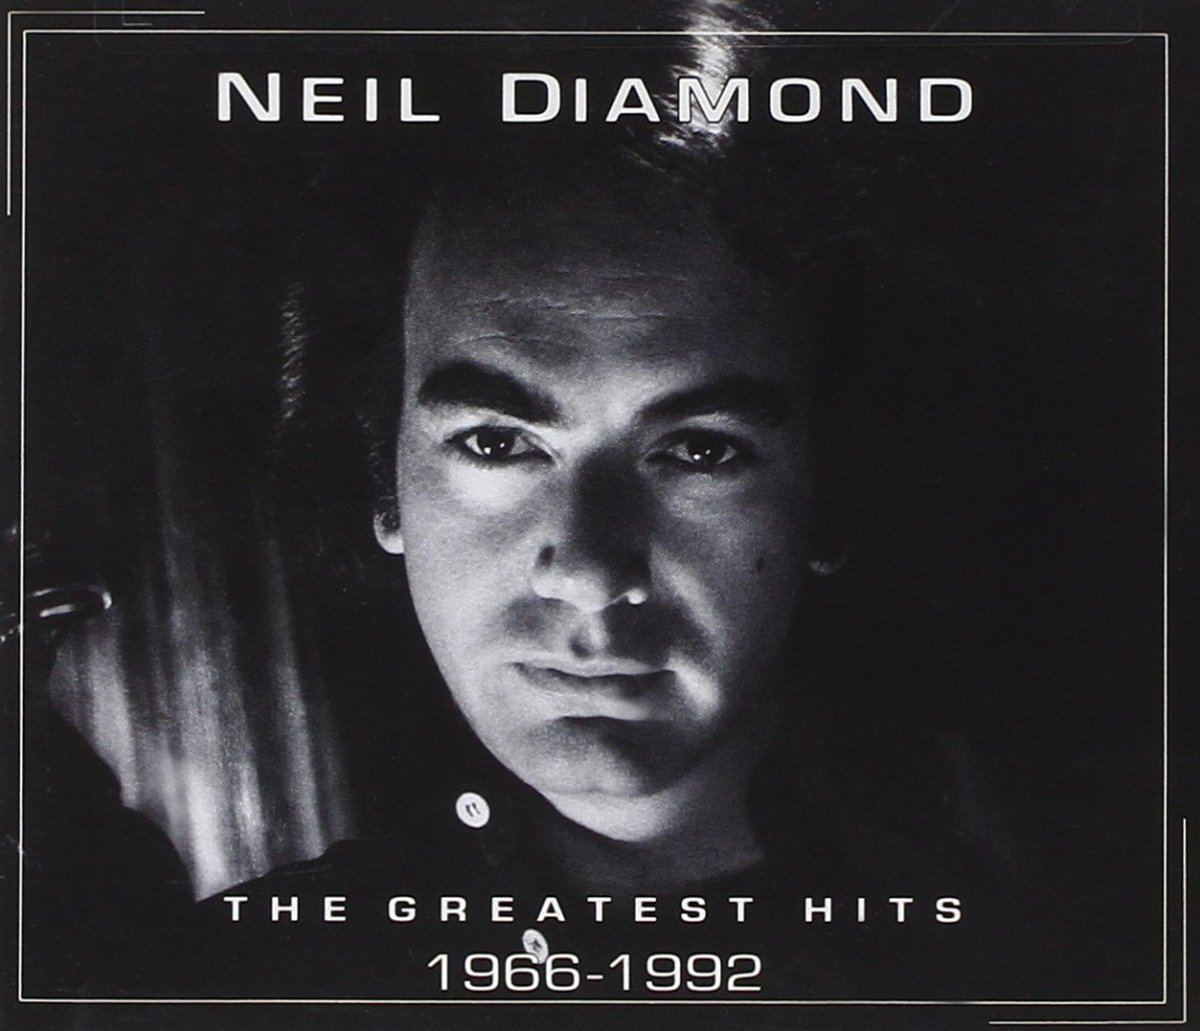 Me and Neil Diamond